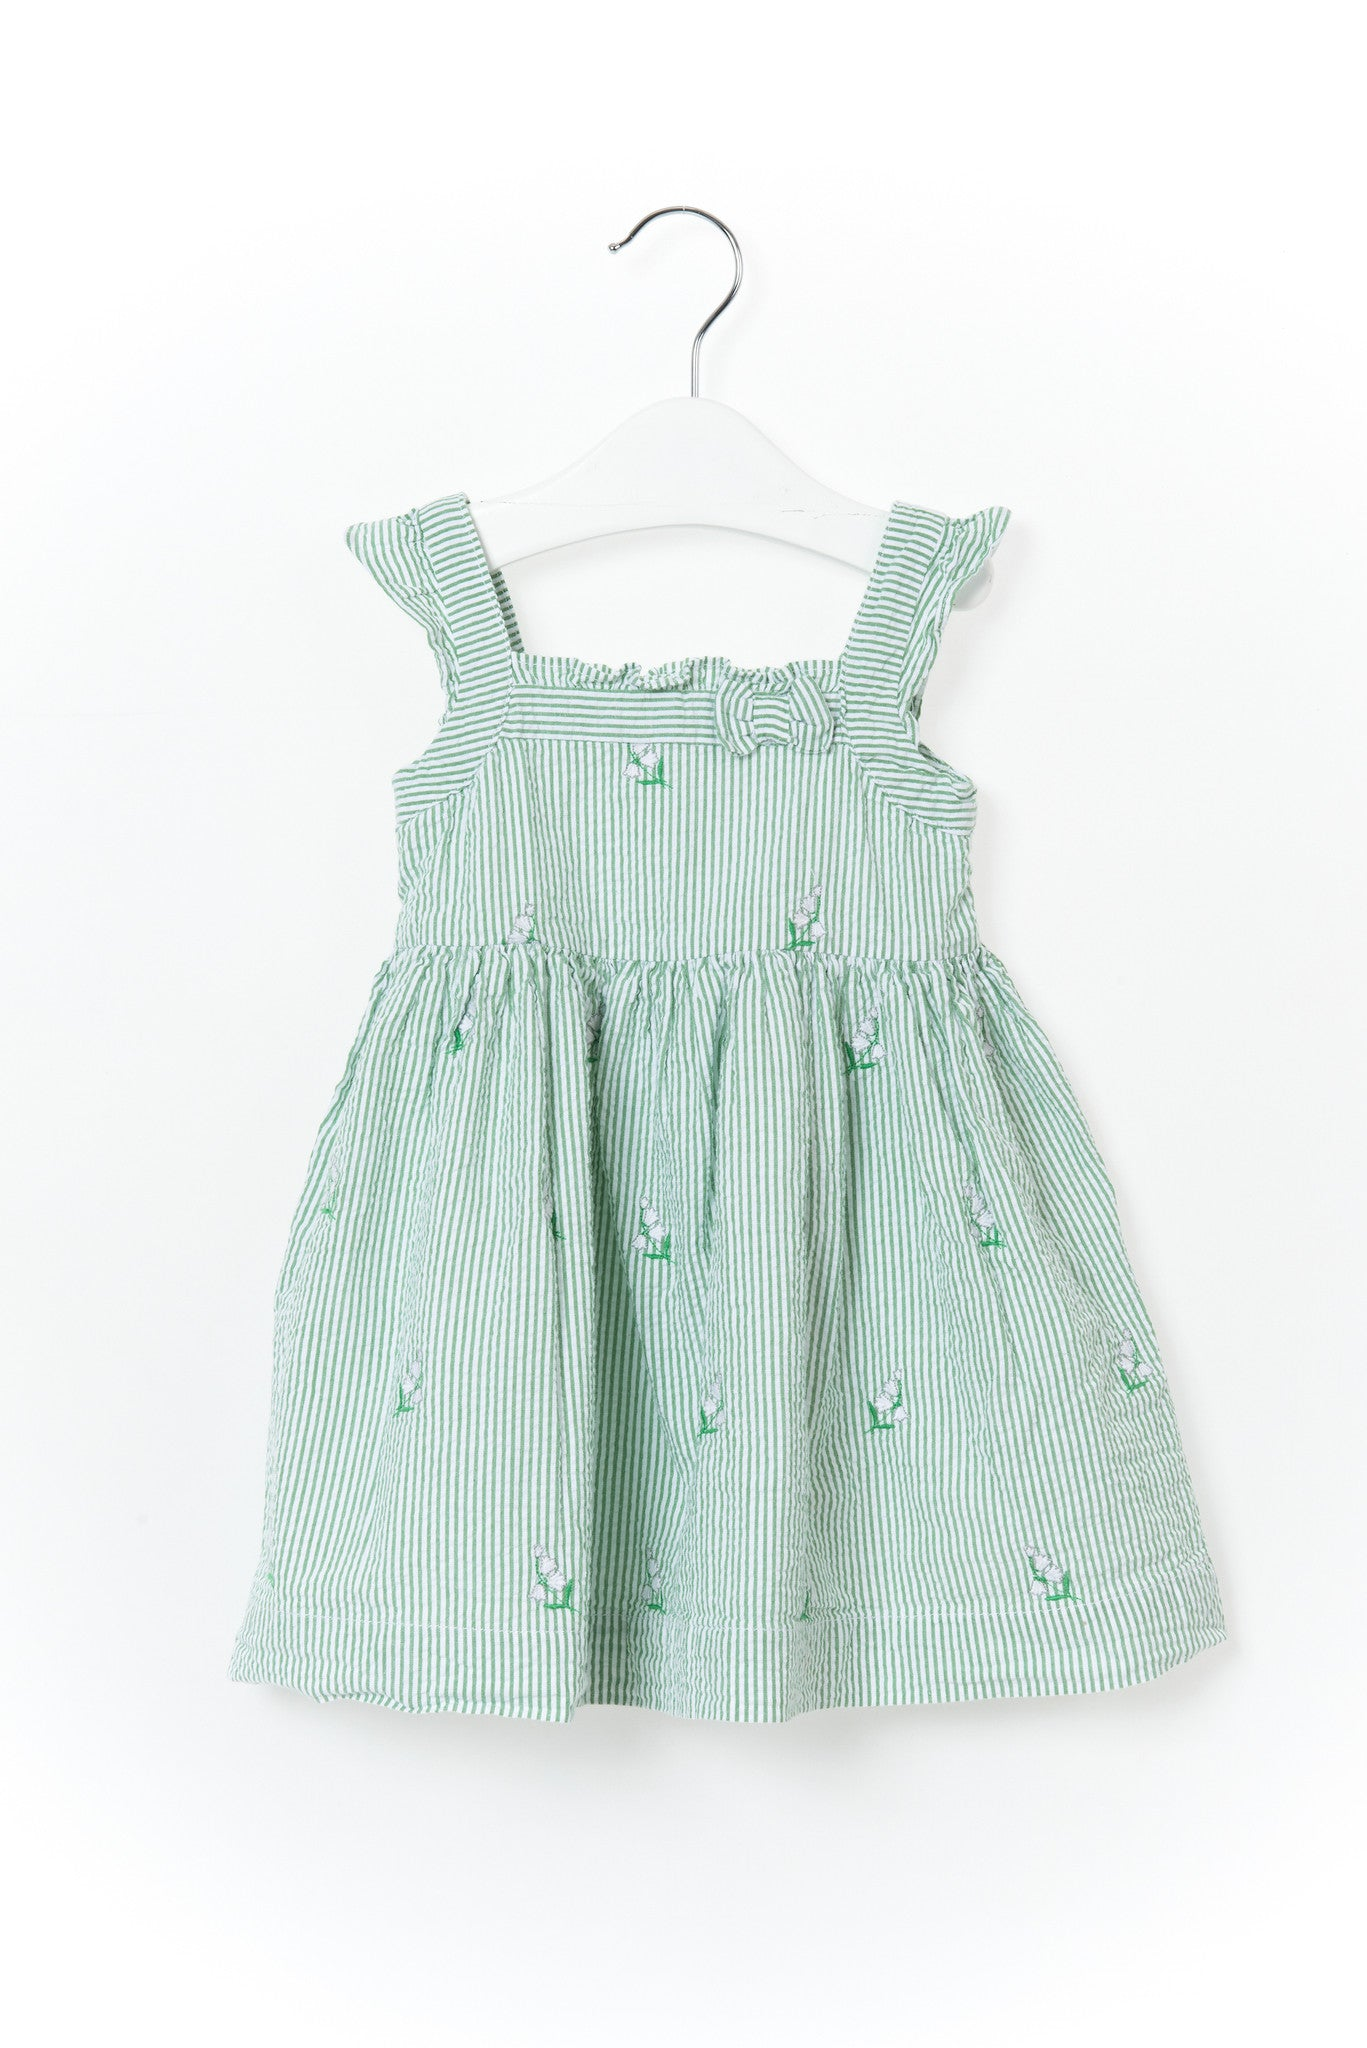 Dress 6-12M, Janie & Jack at Retykle - Online Baby & Kids Clothing Up to 90% Off